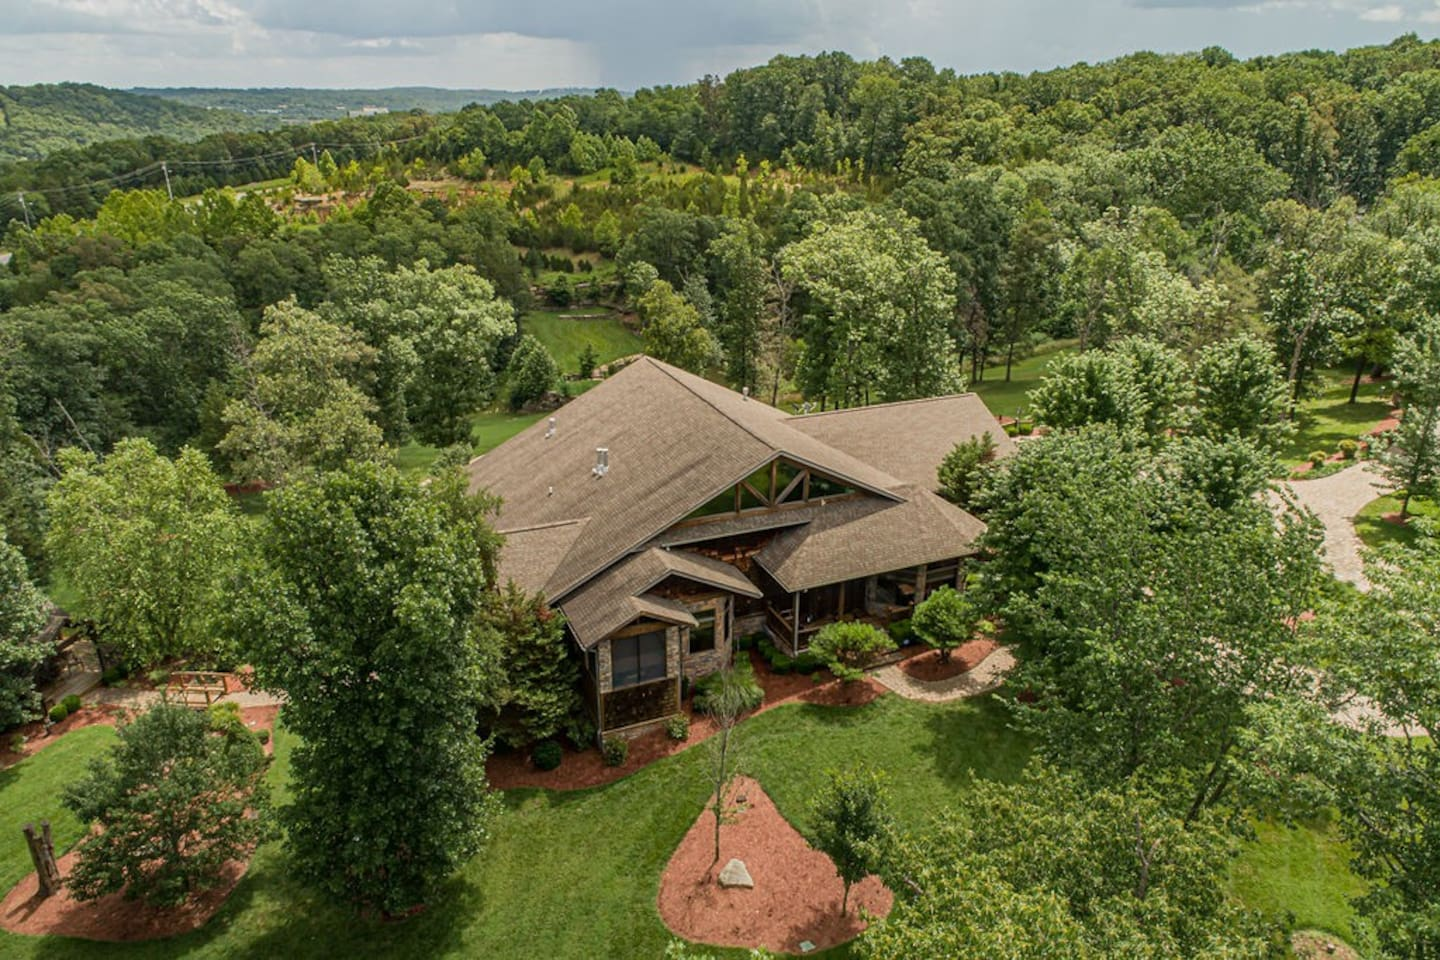 Your private resort nestled in the Ozark Mountains.